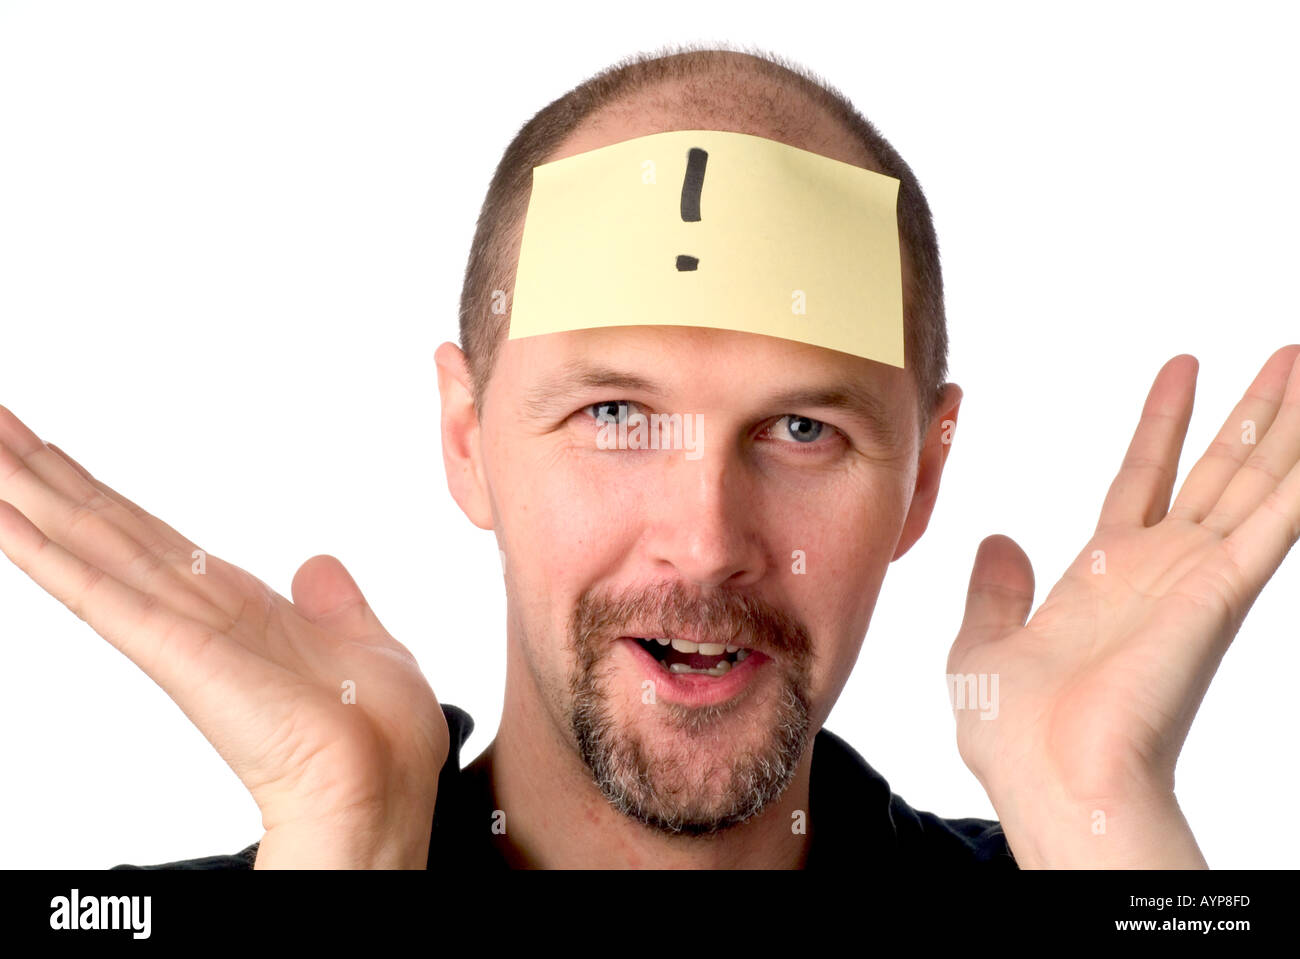 man with post it note on head looking having an idea blue sky thought eureka bingo exclamation mark what hands thrown up in di - Stock Image